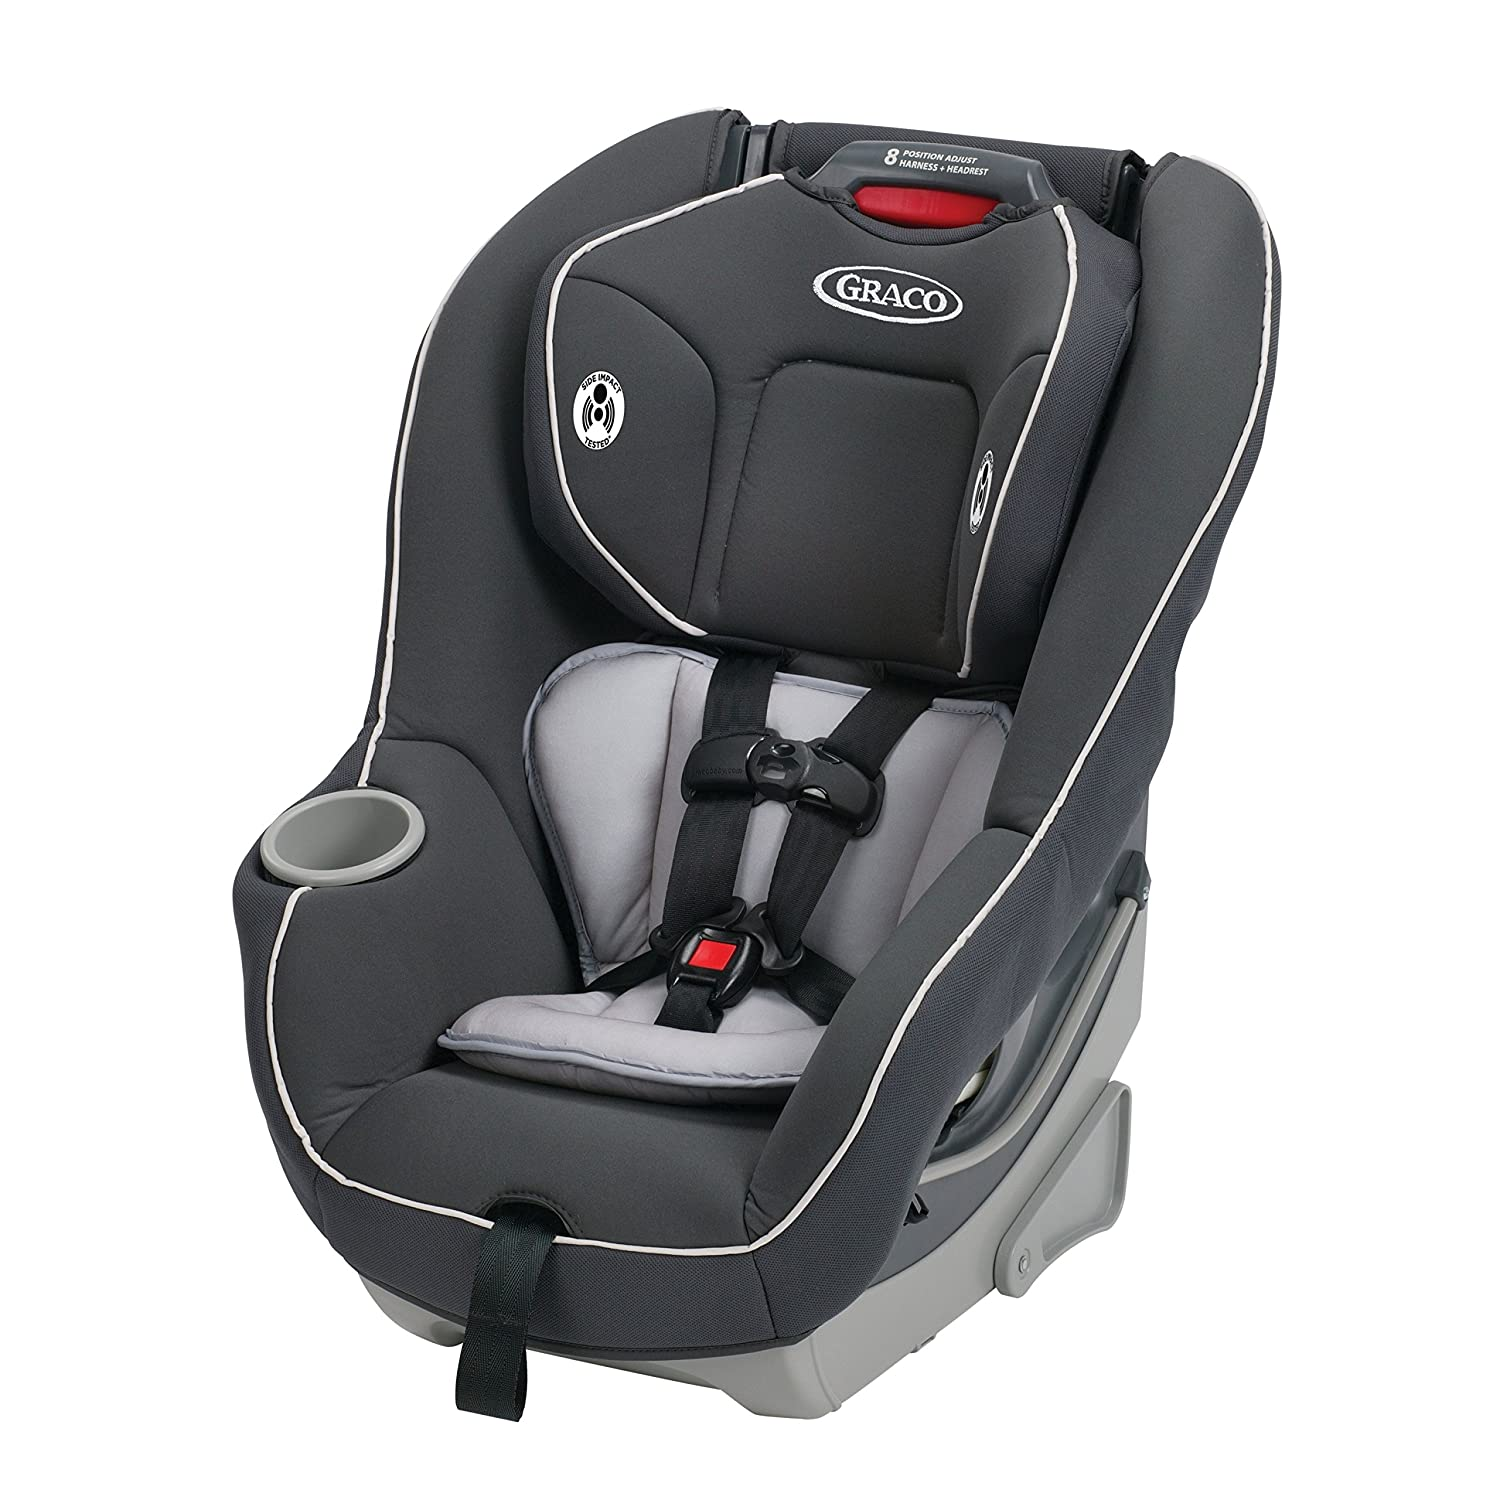 Graco Contender 65 Convertible Car Seat, Glacier, One Size 1927062